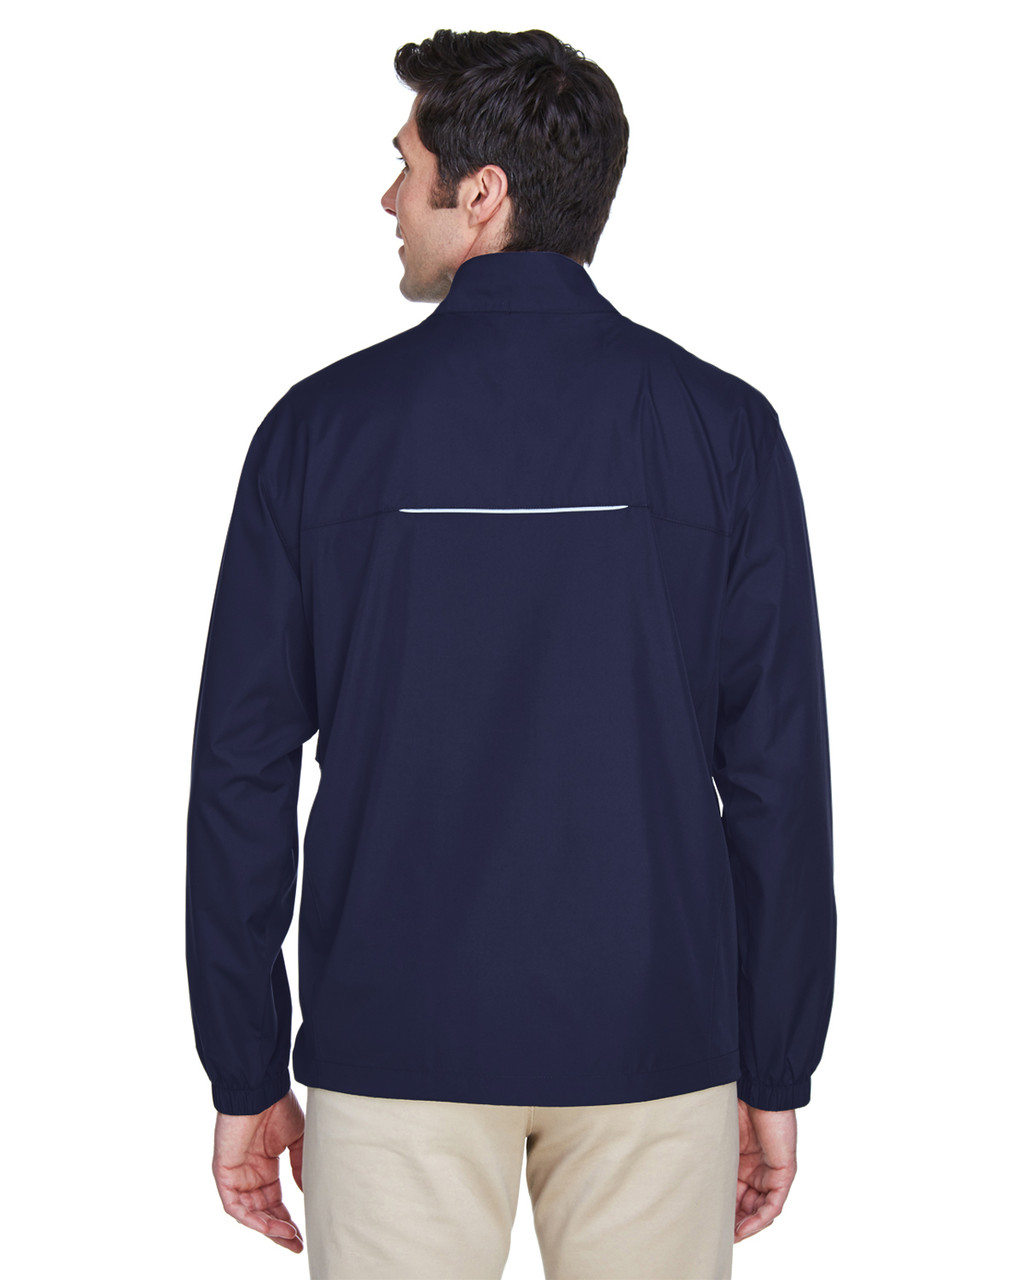 Classic Navy - Back, 88183T Ash City - Core 365 Tall Motivate Unlined Lightweight Jacket | Blankclothing.ca